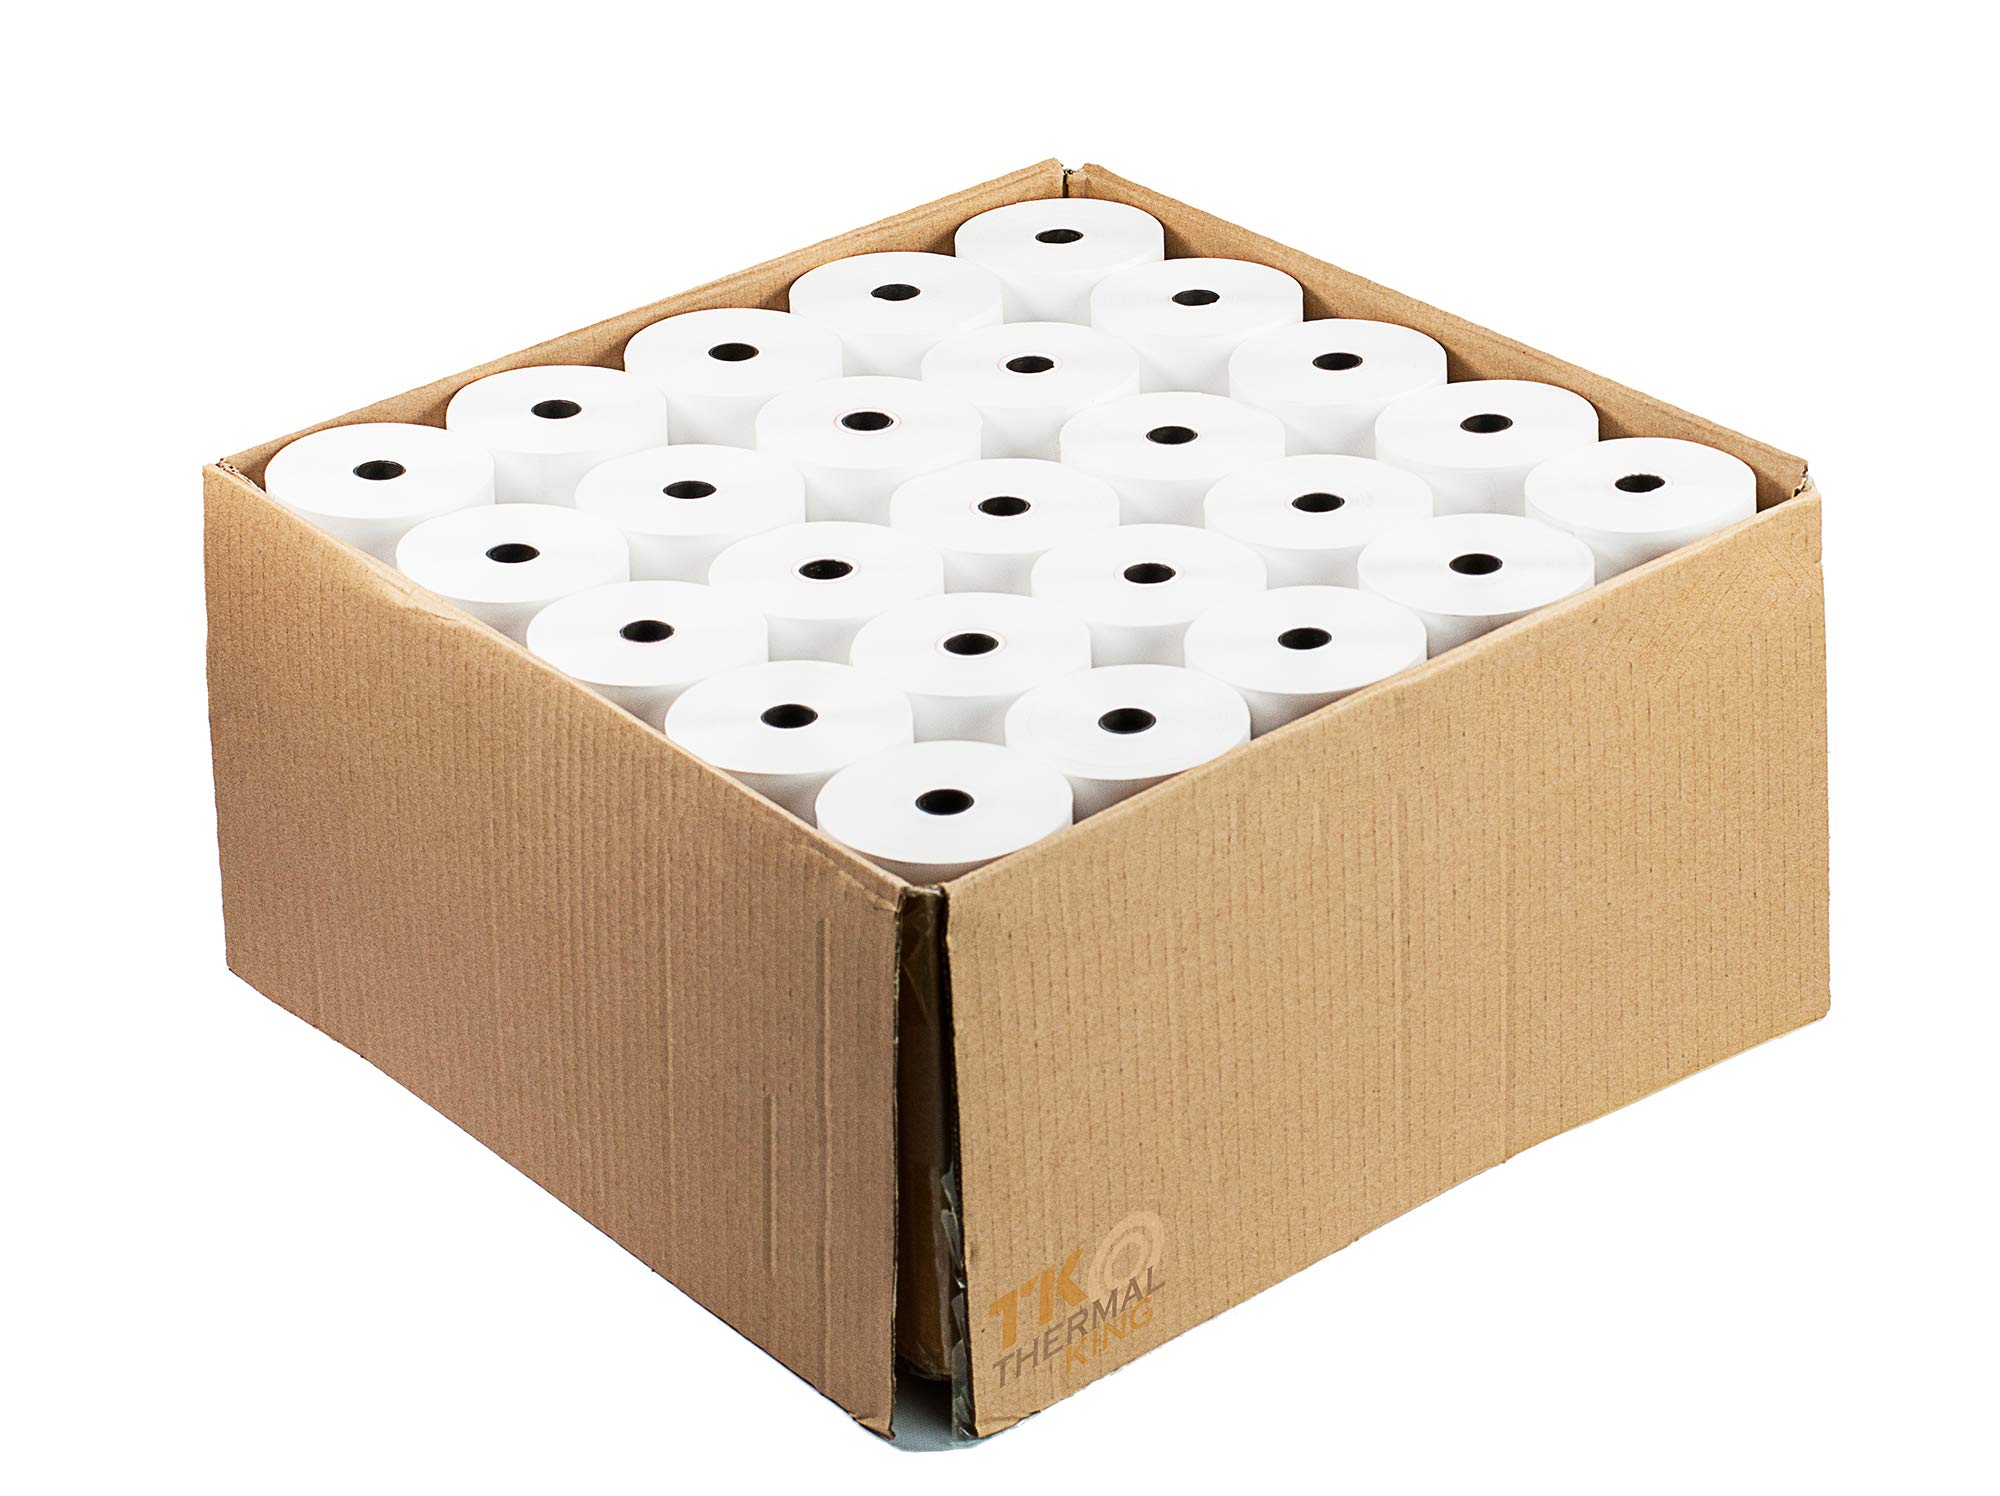 Thermal King, Point-of-Sale Thermal Paper Rolls fits Clover Station POS System, 3 1/8'' x 230', 50 Rolls by Thermal King